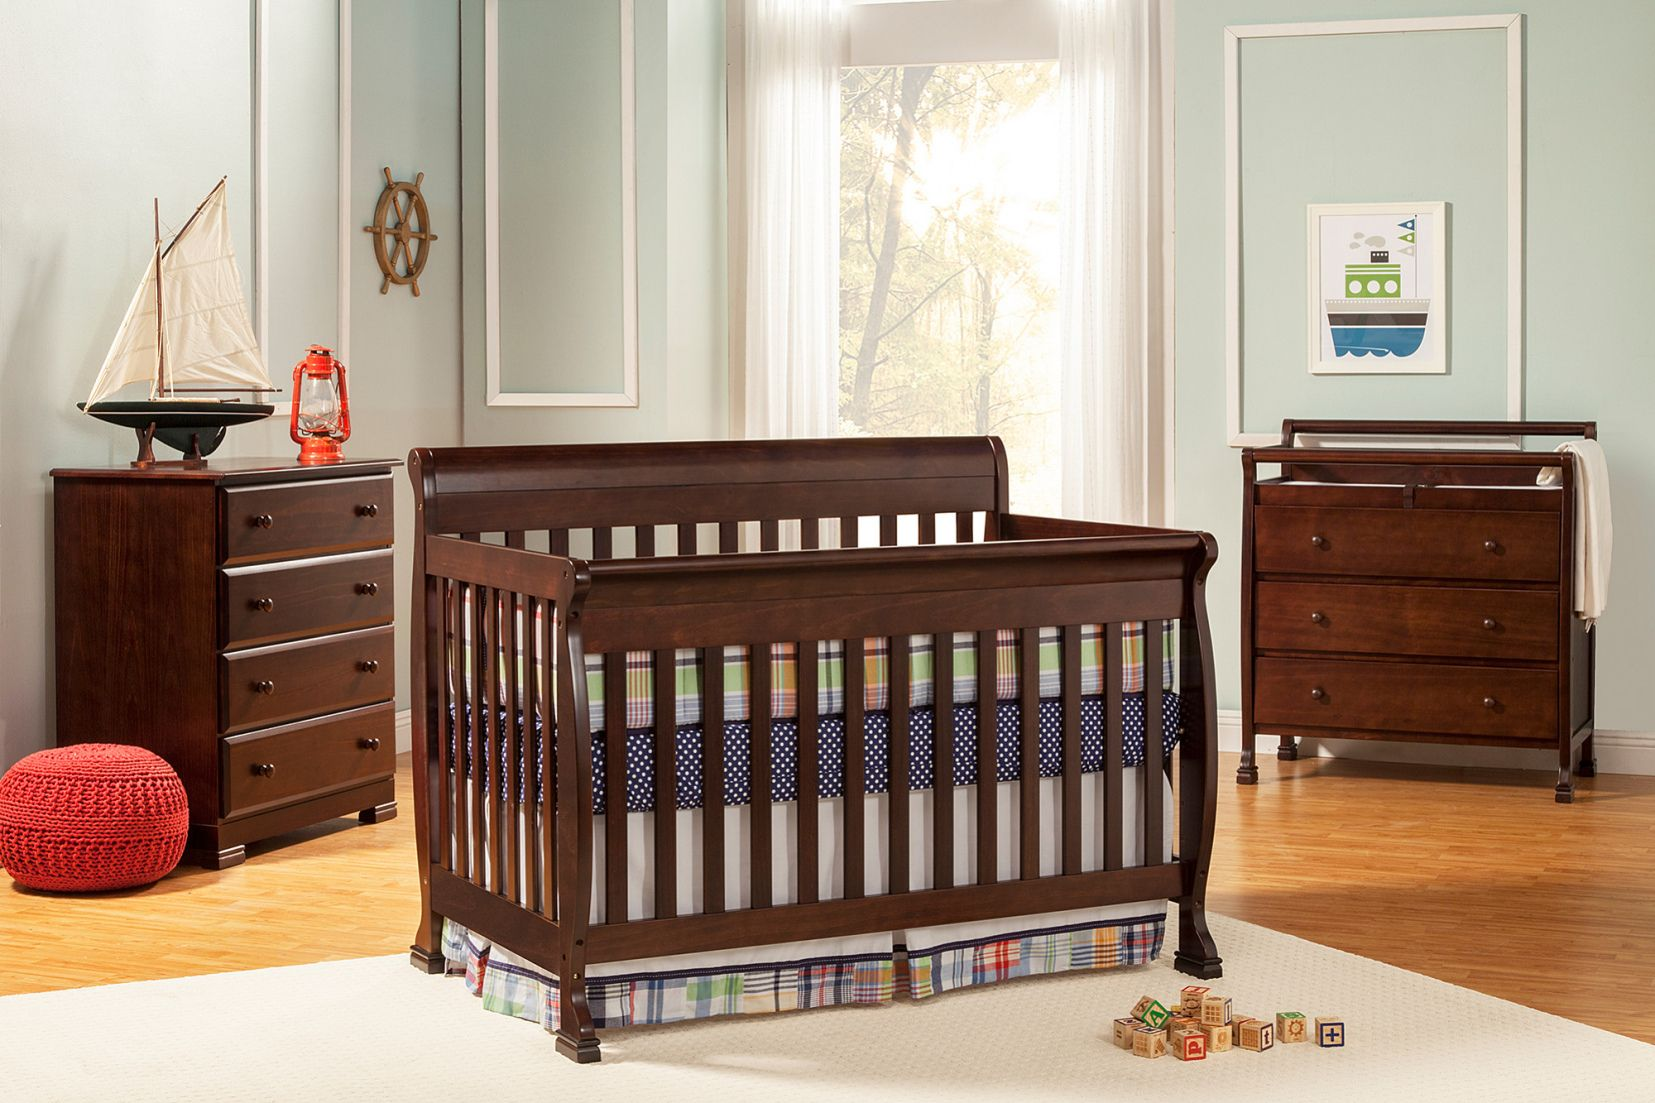 55 Crib Toddler Bed Combo